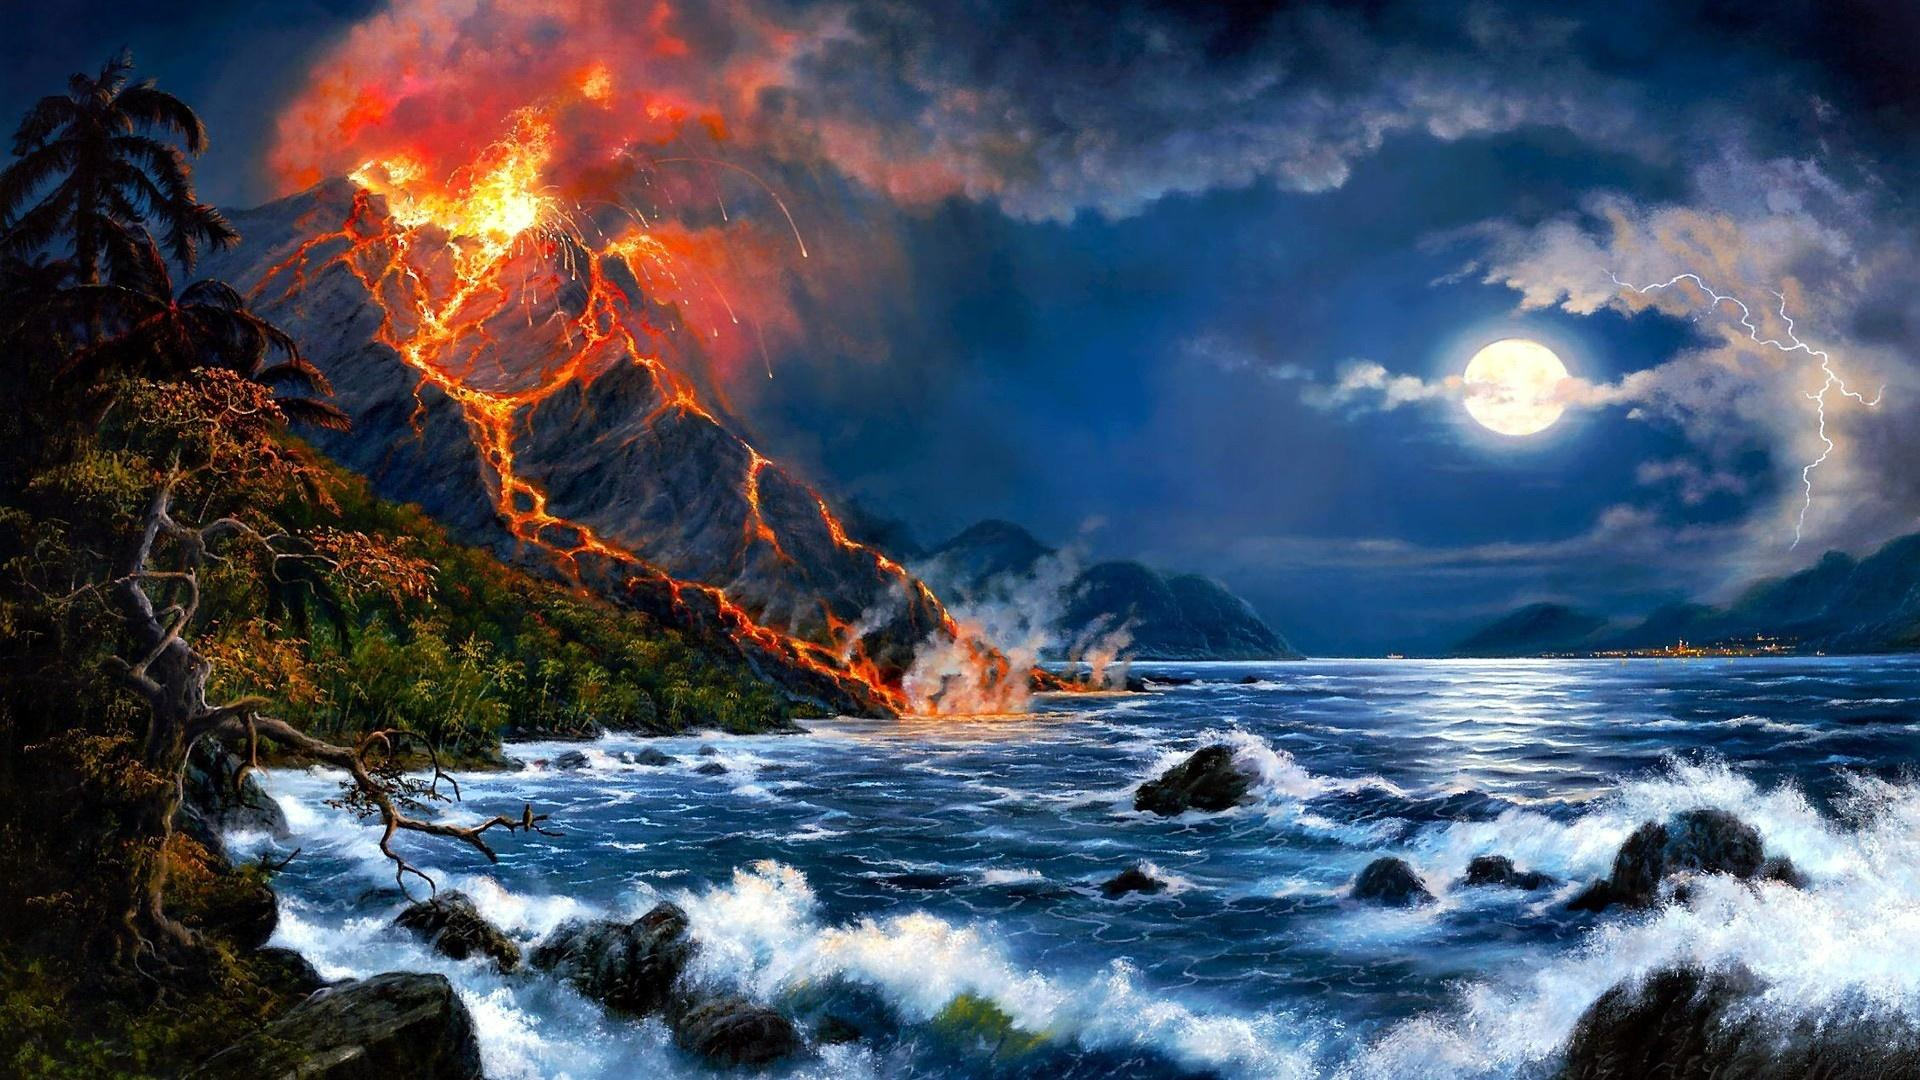 Erupting Volcano Oil Painting Art Picture Image Wallpapers HD Free